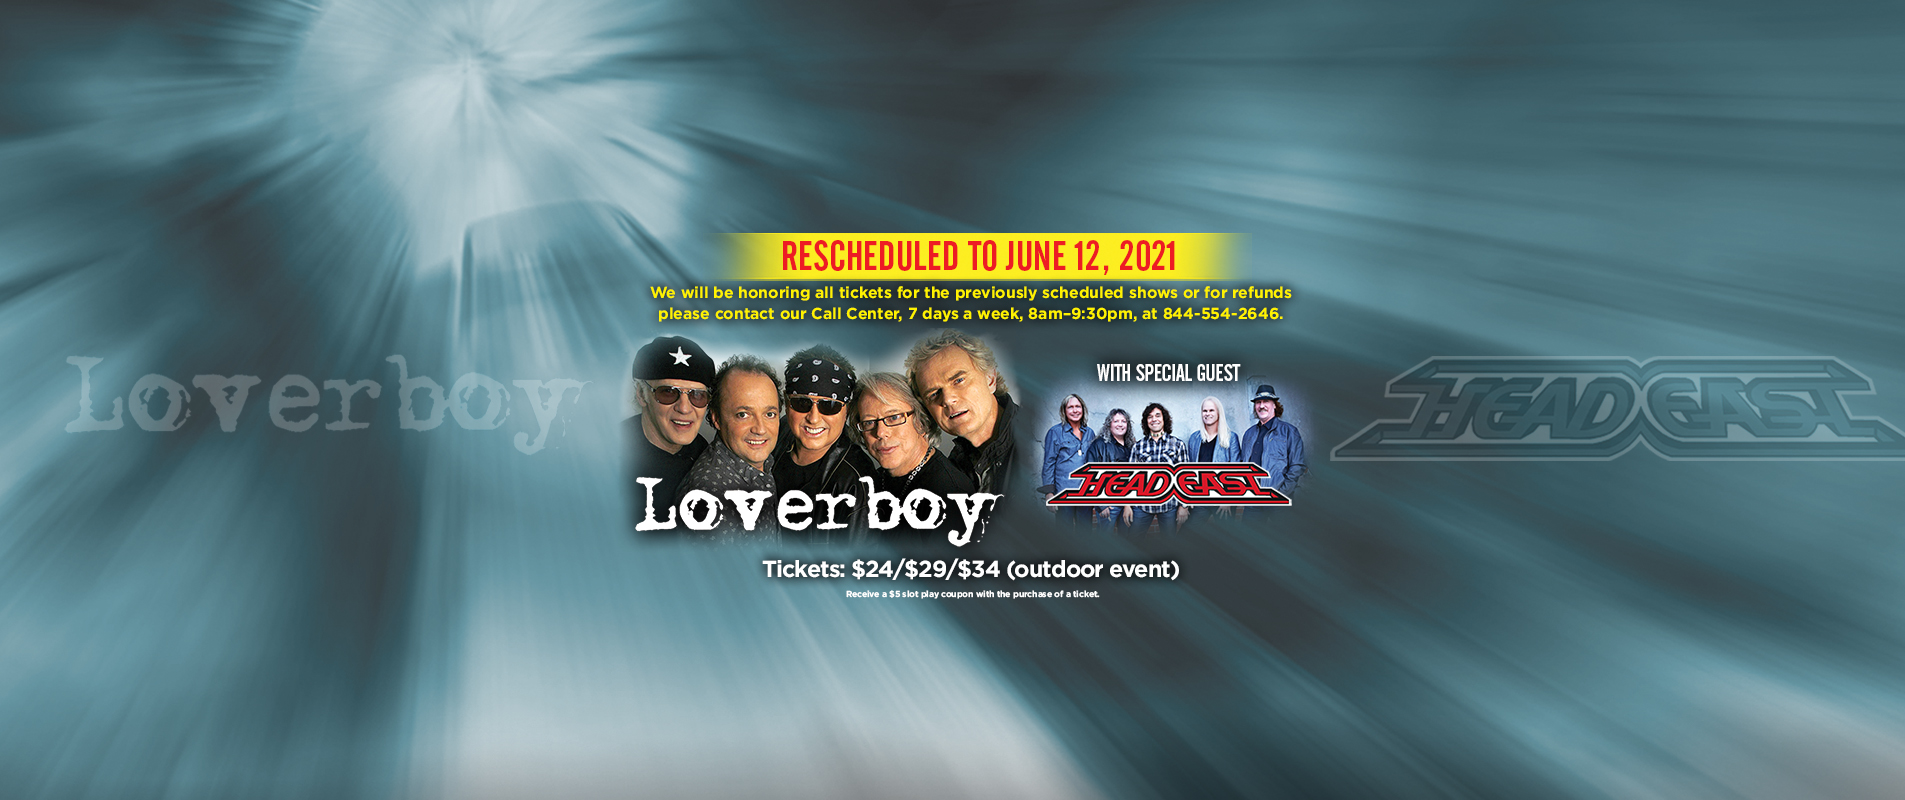 1905x800_rotator_nl_loverboy_rescheduled